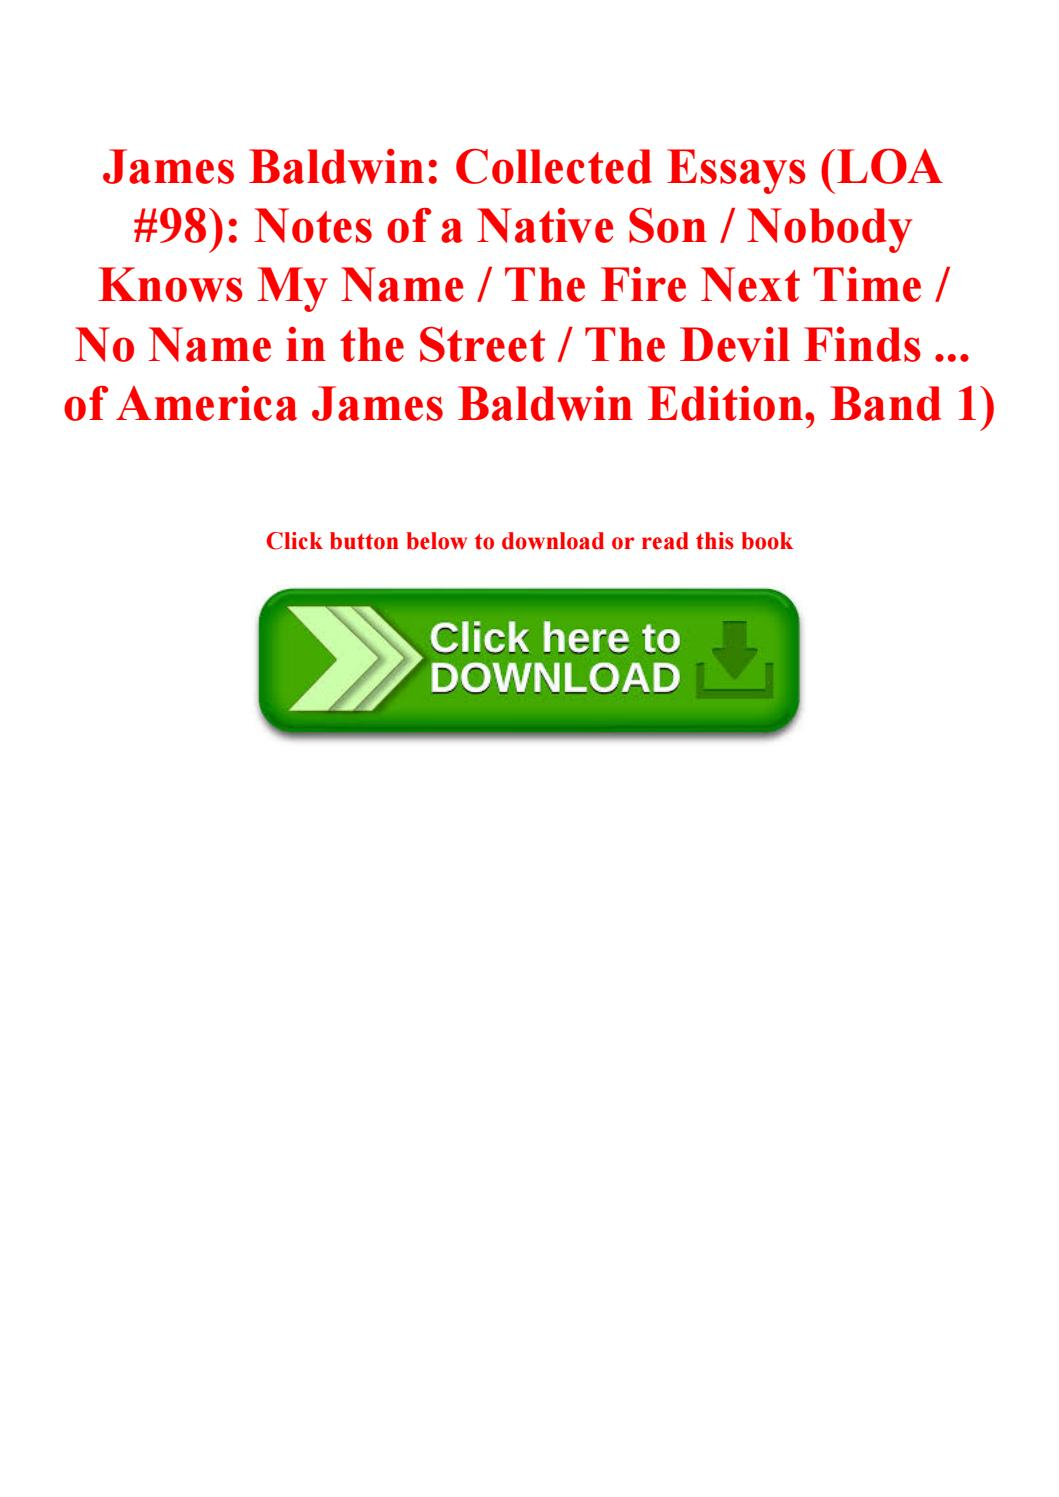 024 James Baldwin Collected Essays Essay Example Page 1 Wondrous Table Of Contents Ebook Google Books Full